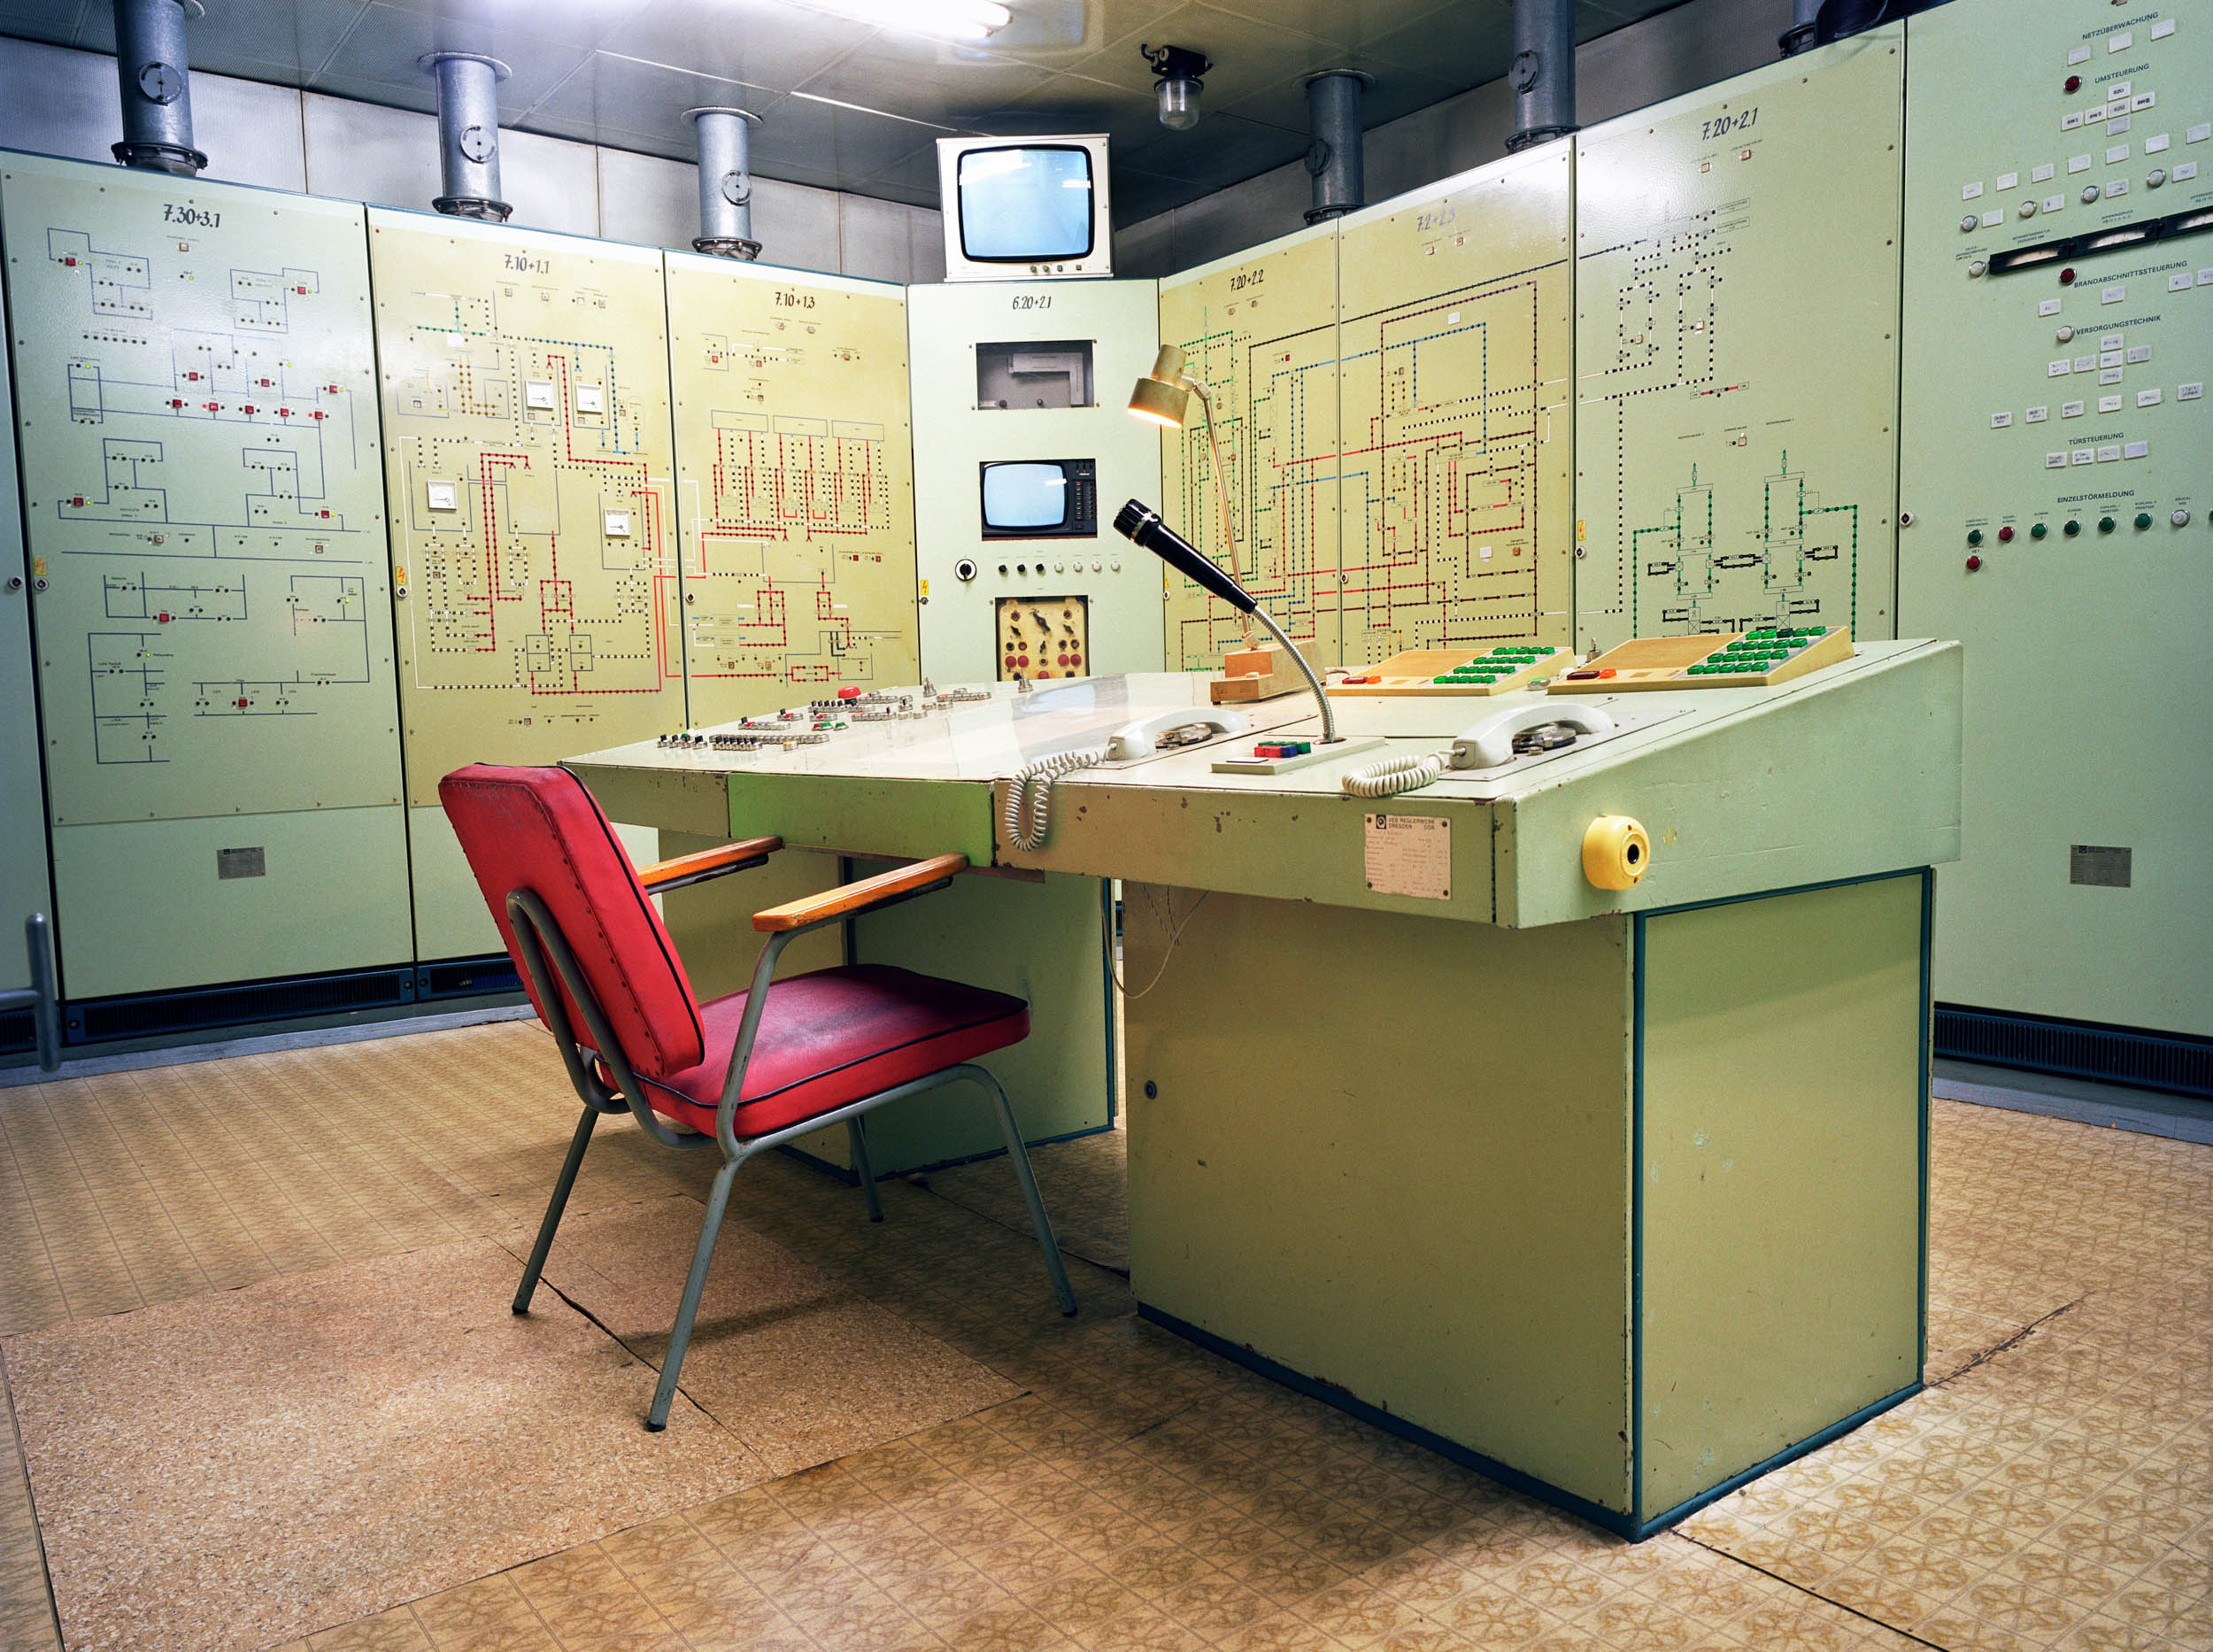 Underground bunker of the East German Army